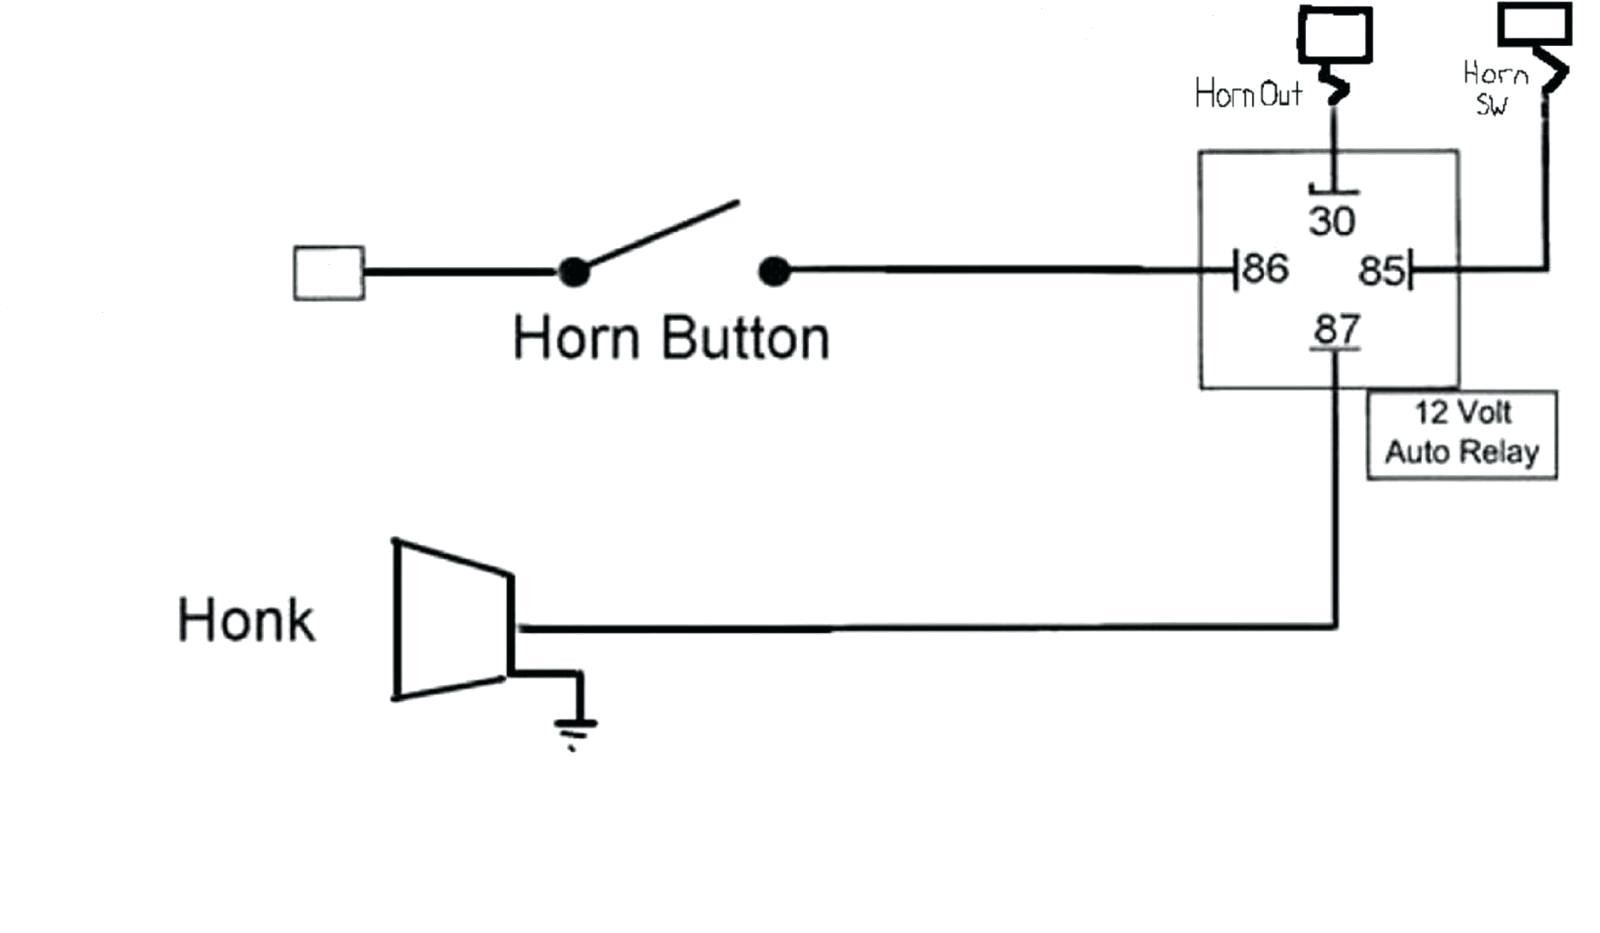 Car Horn Wiring - Wiring Diagram Data - Horn Wiring Diagram With Relay